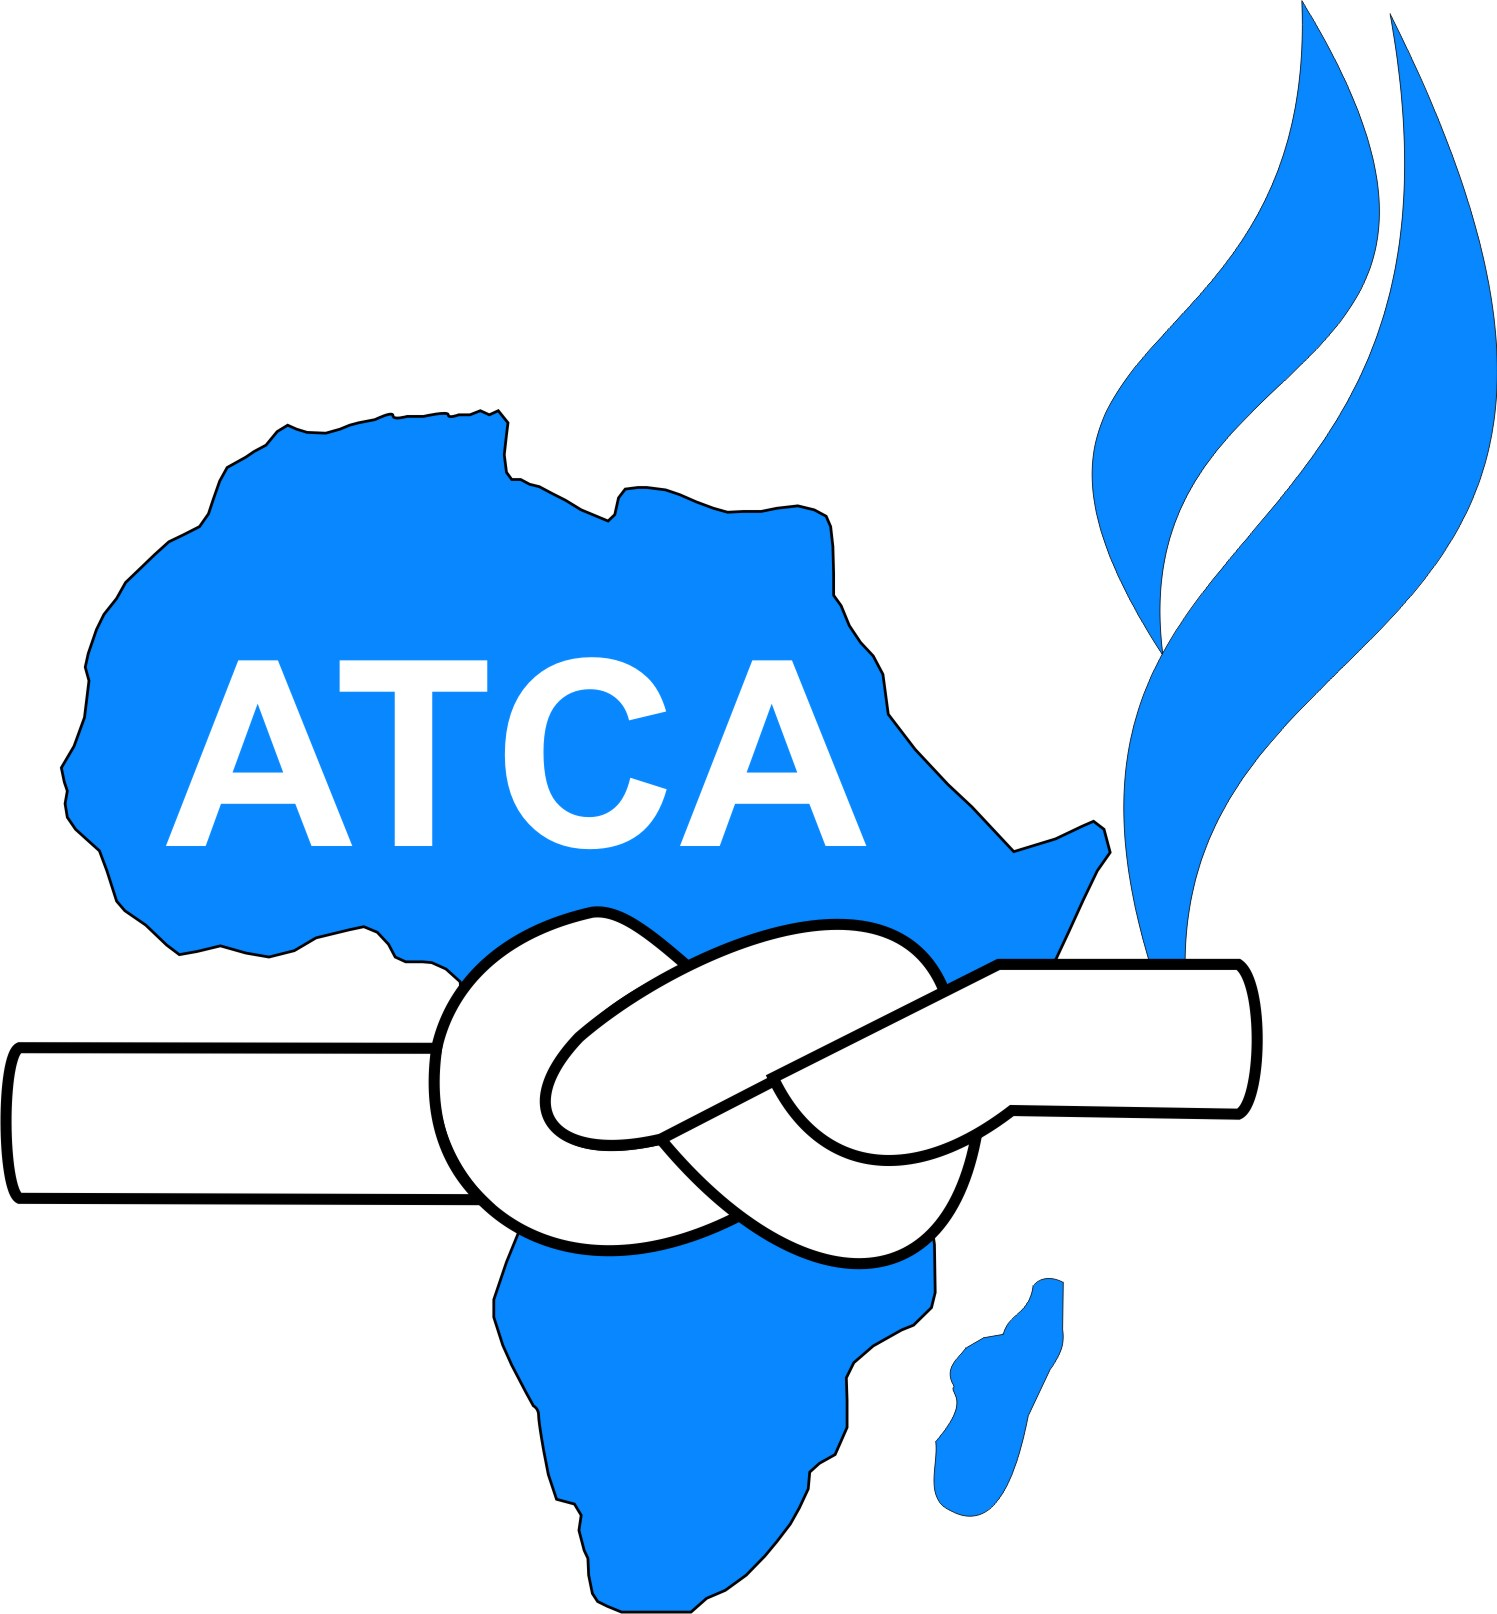 logo for African Tobacco Control Alliance